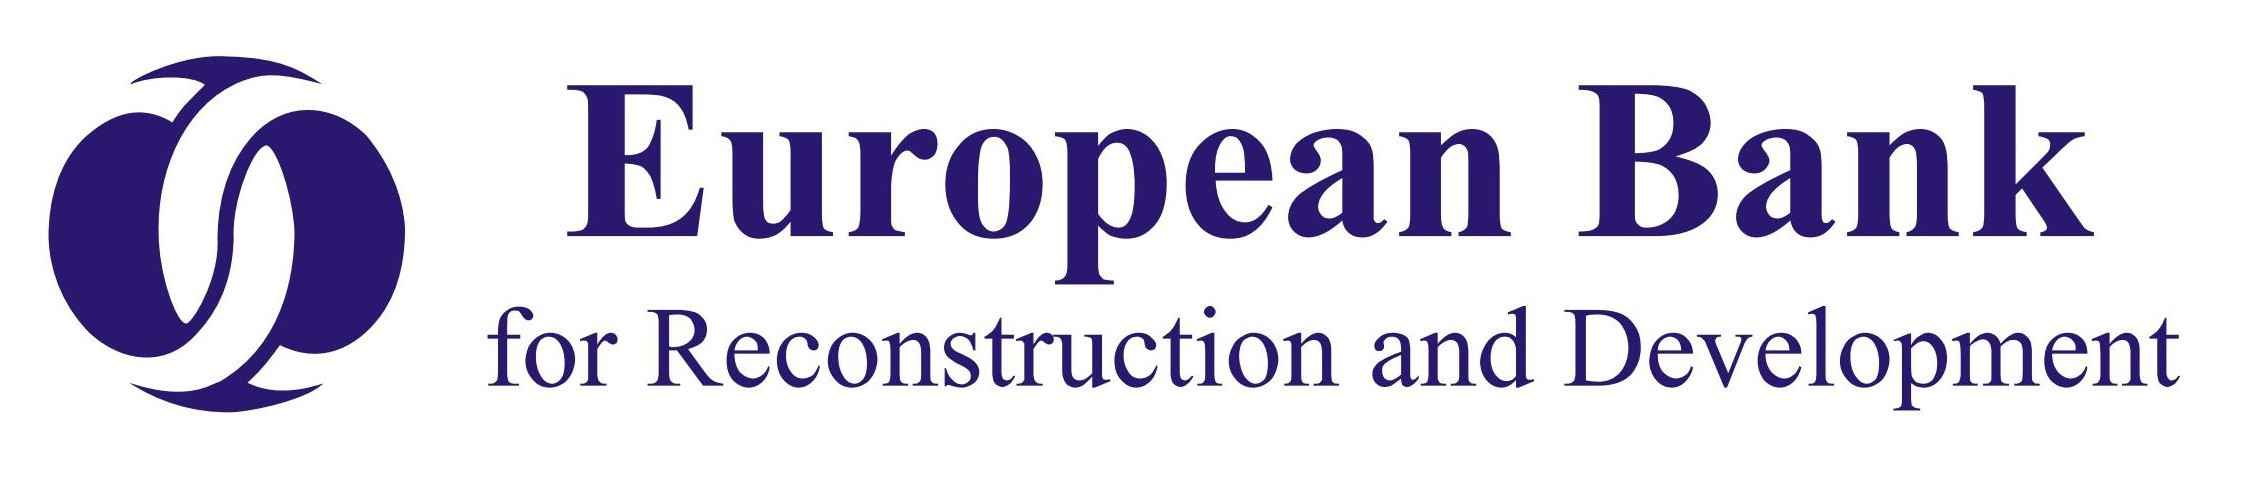 EBRD – European Bank for Reconstruction and Development Logo [EPS PDF] png